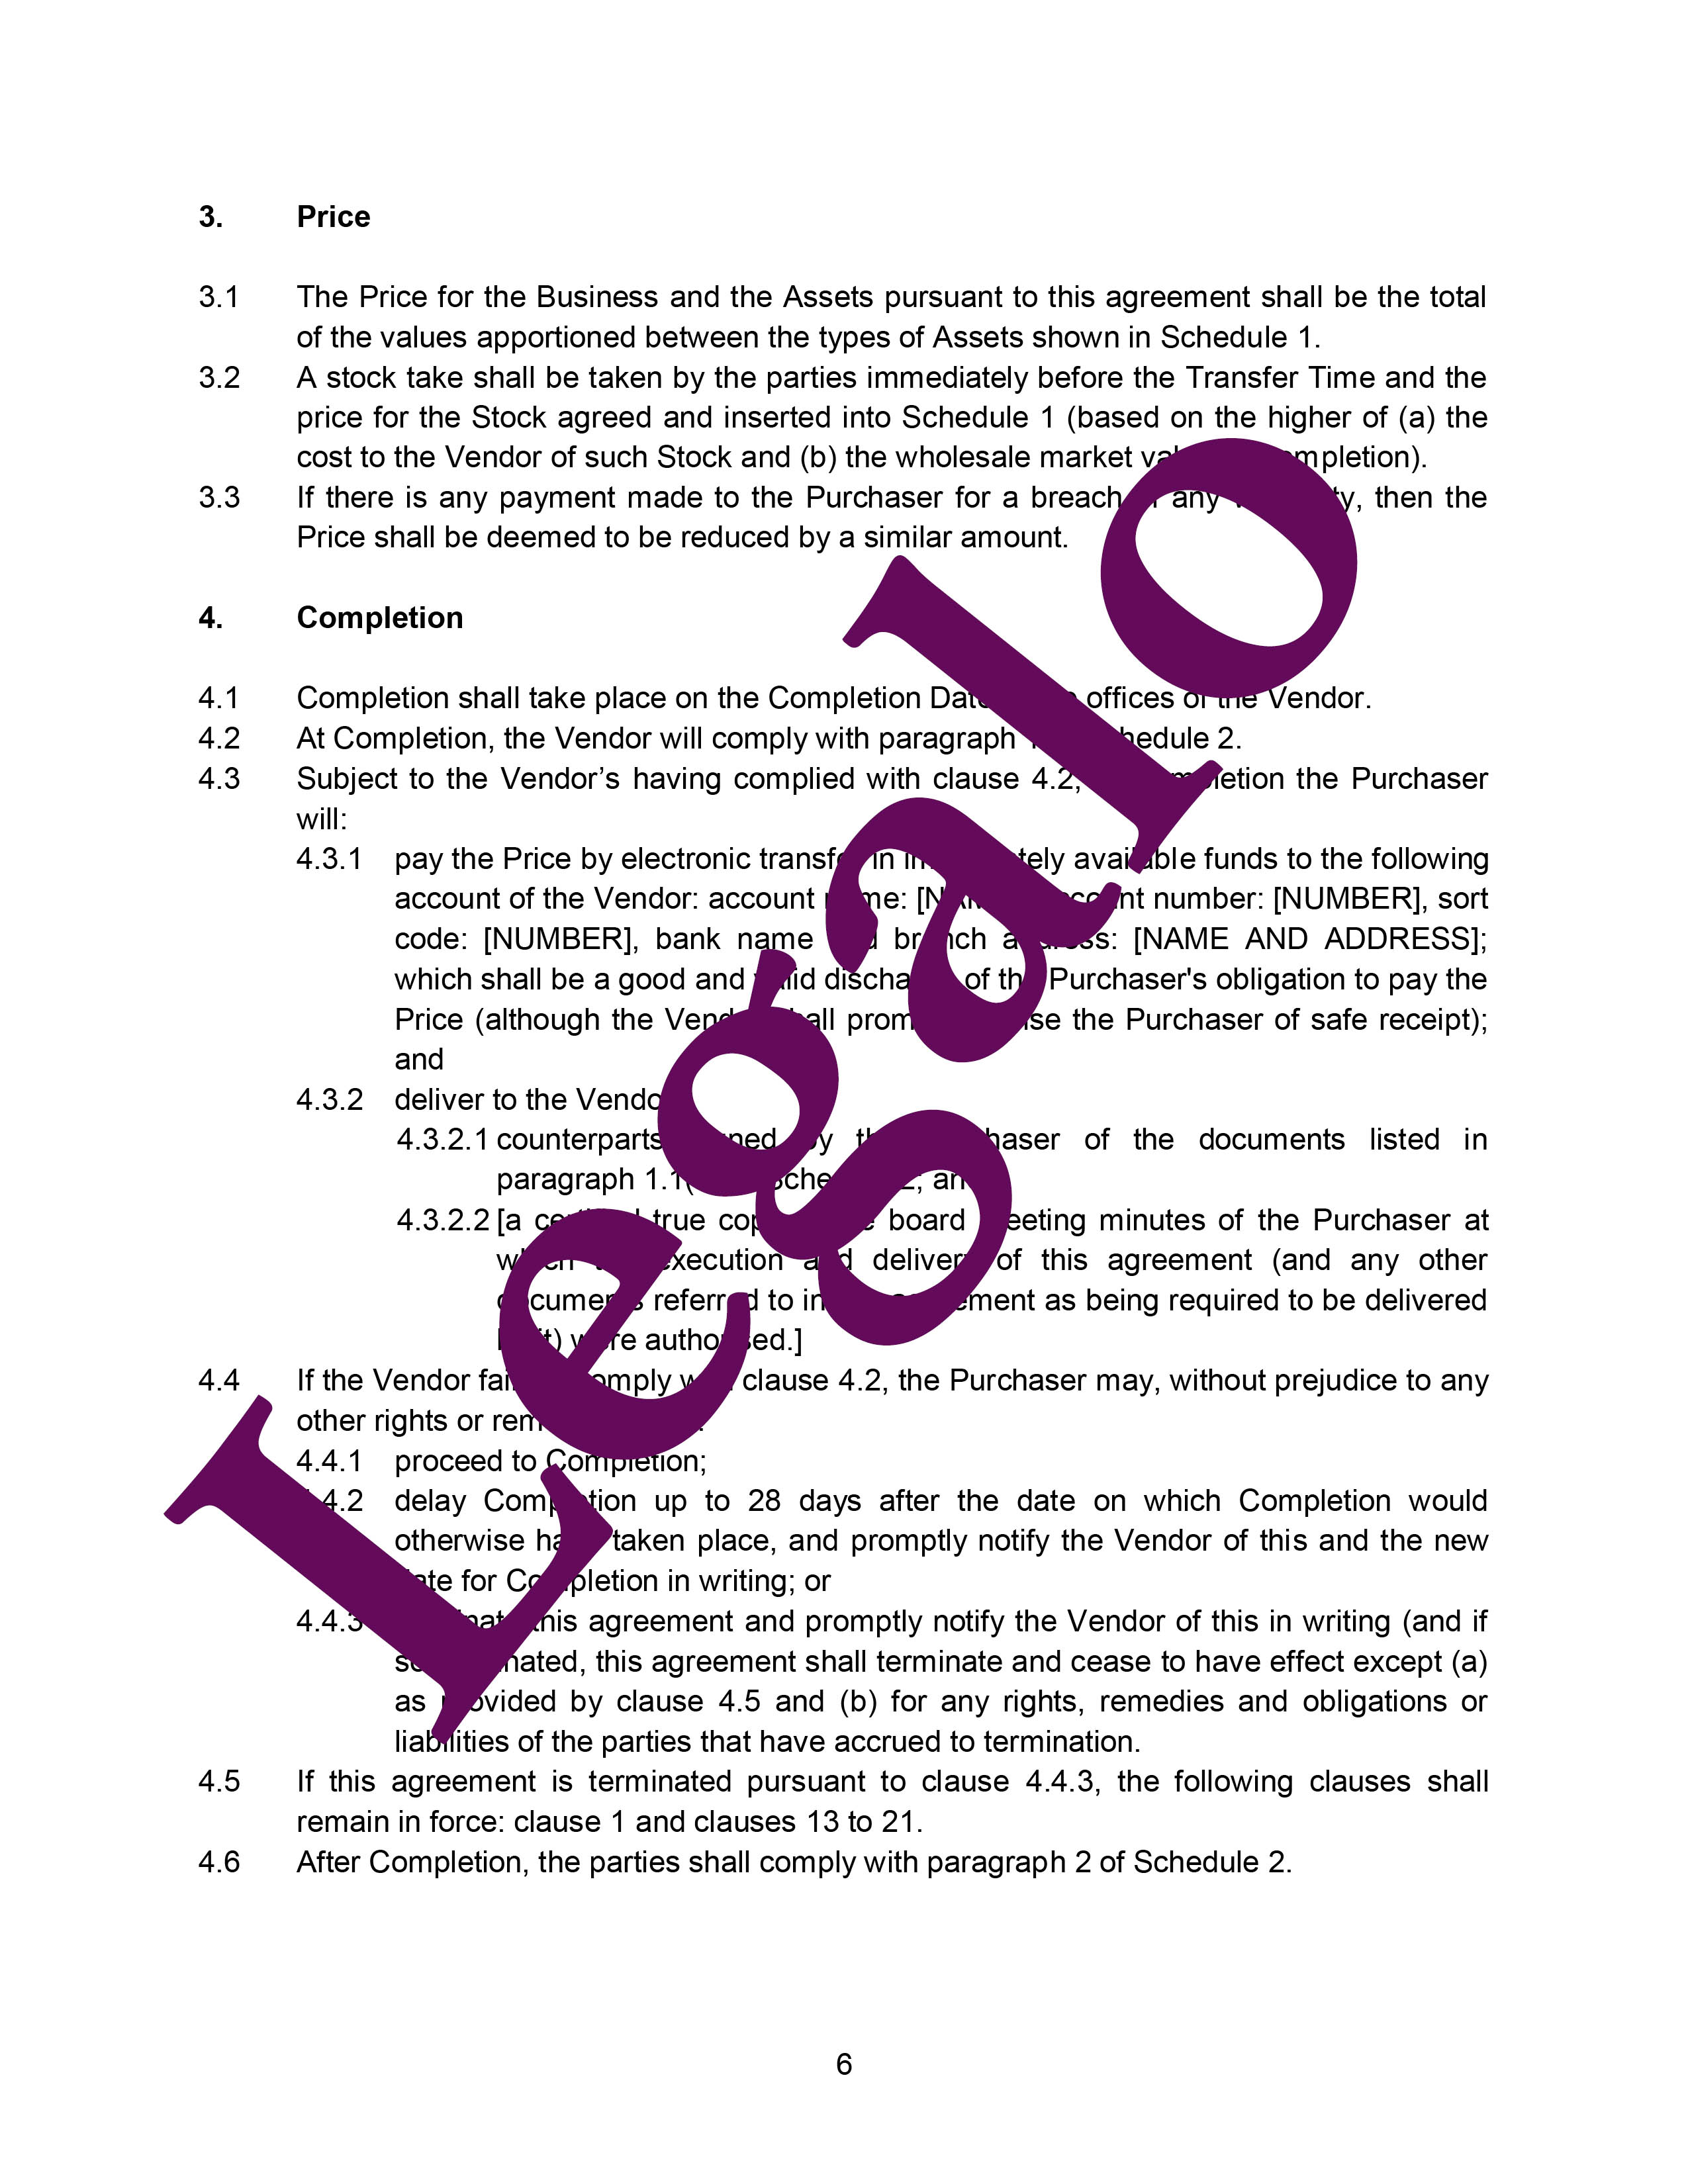 Business transfer agreement preview image page 6